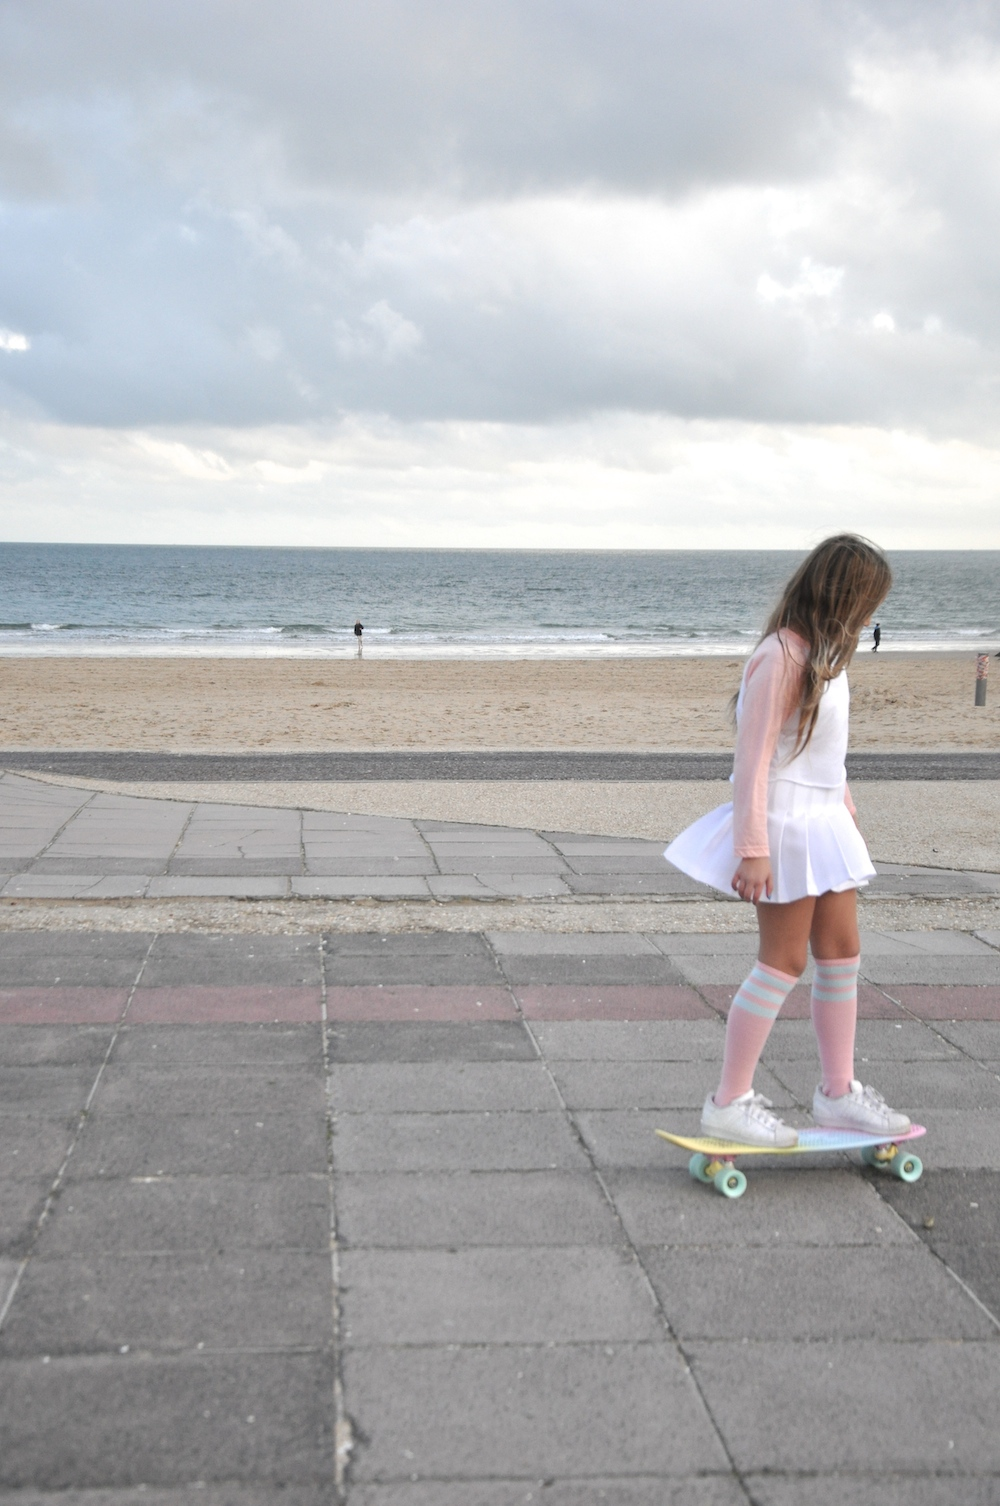 Sandbanks_American_apparel_penny_skateboards